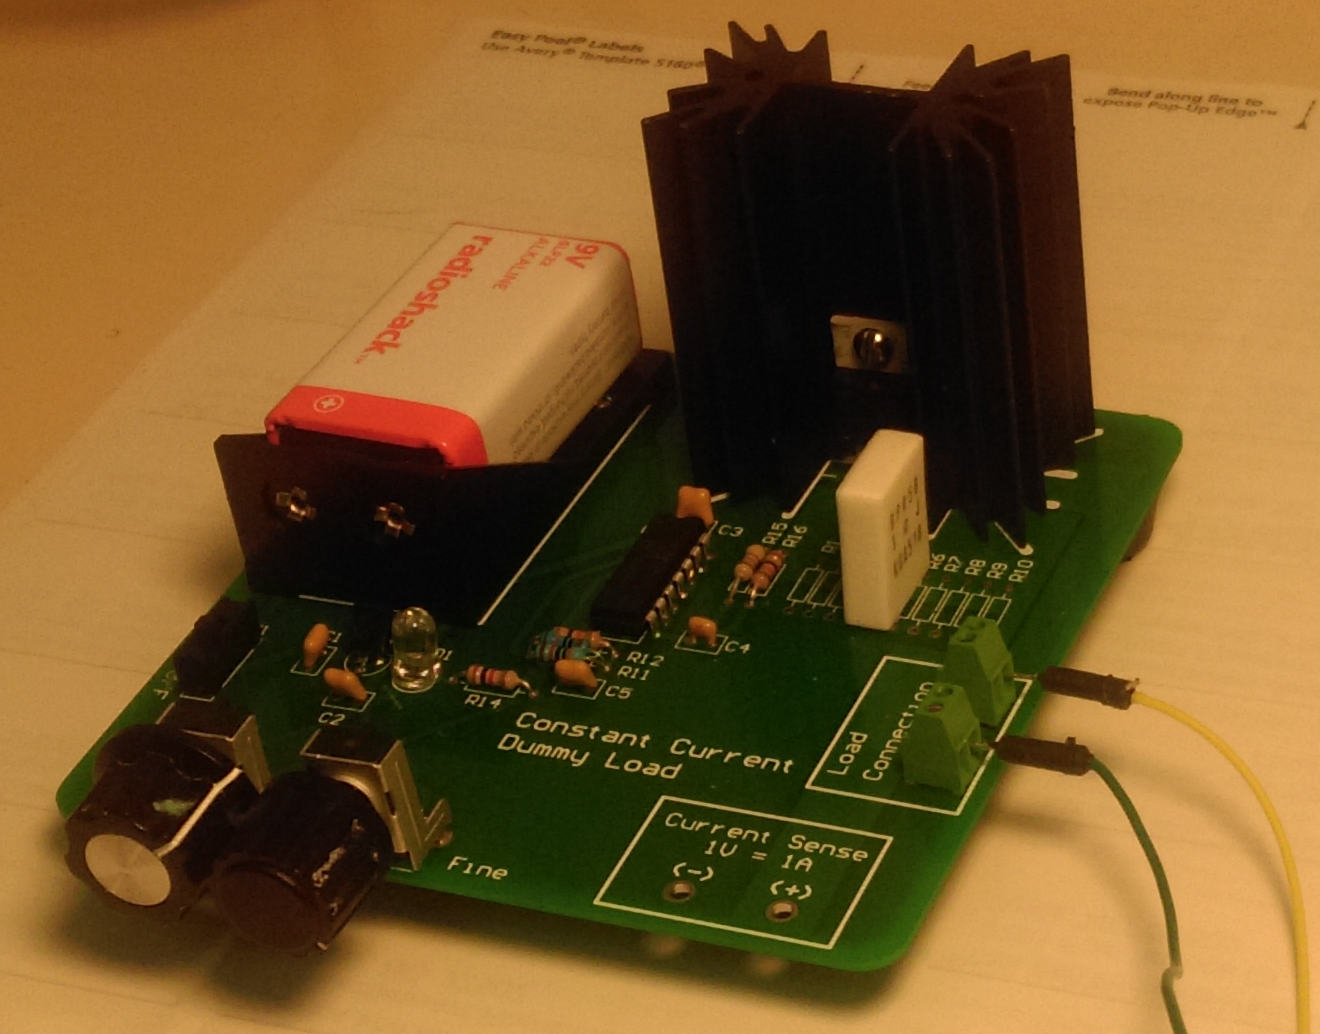 July 2015 Triembed Dummy Load Circuit Constant Current Schema This Is A Made From One Of Shane Trents Pcbs Like Those Given Away At Recent Meeting As Mentioned On The Email List